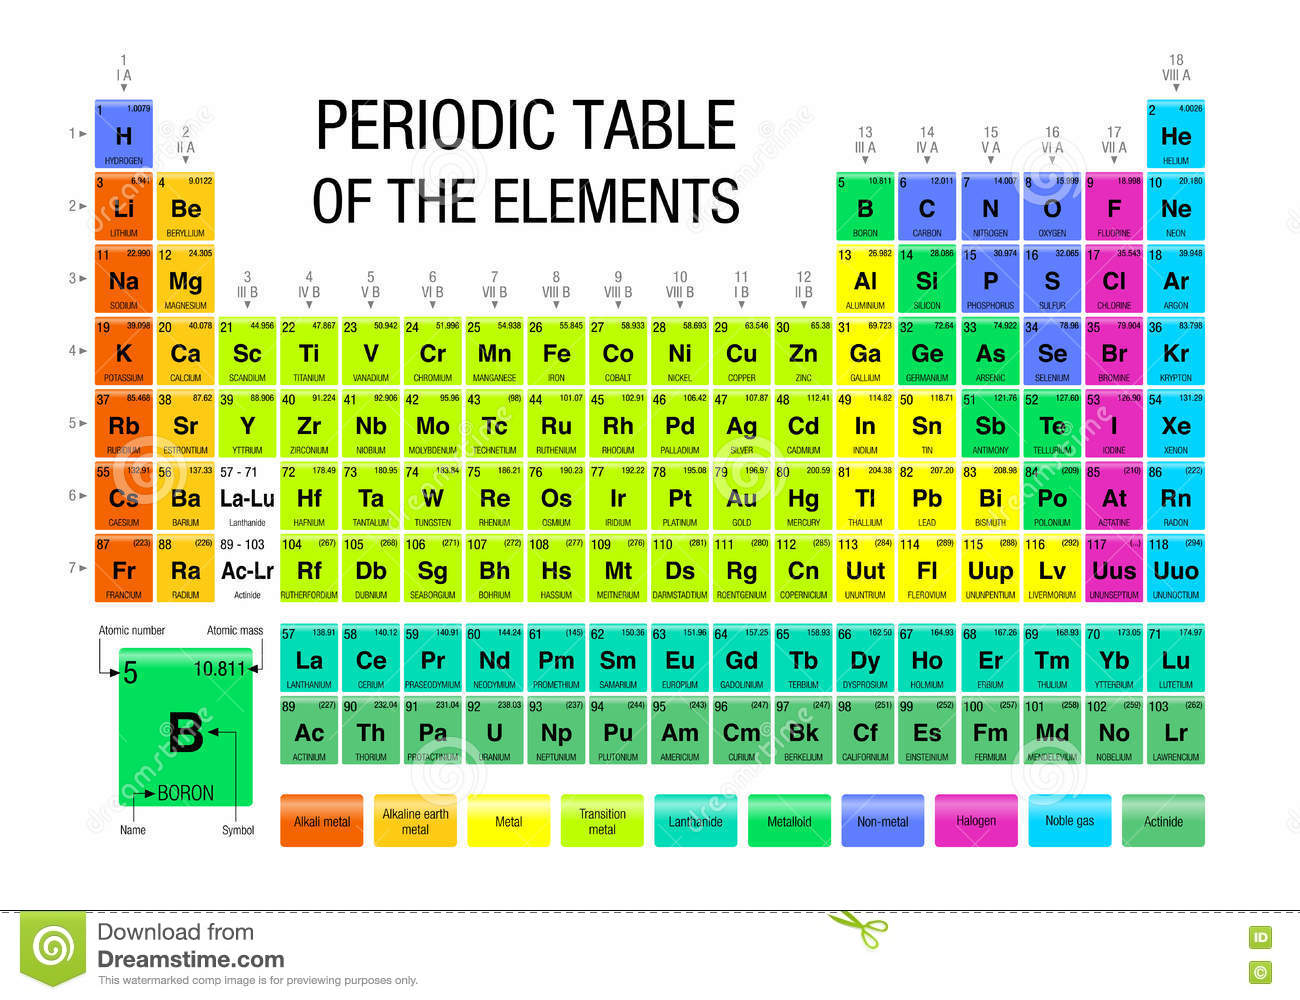 Periodic table of the elements chemistry stock vector download periodic table of the elements chemistry stock vector illustration of scientific background urtaz Gallery